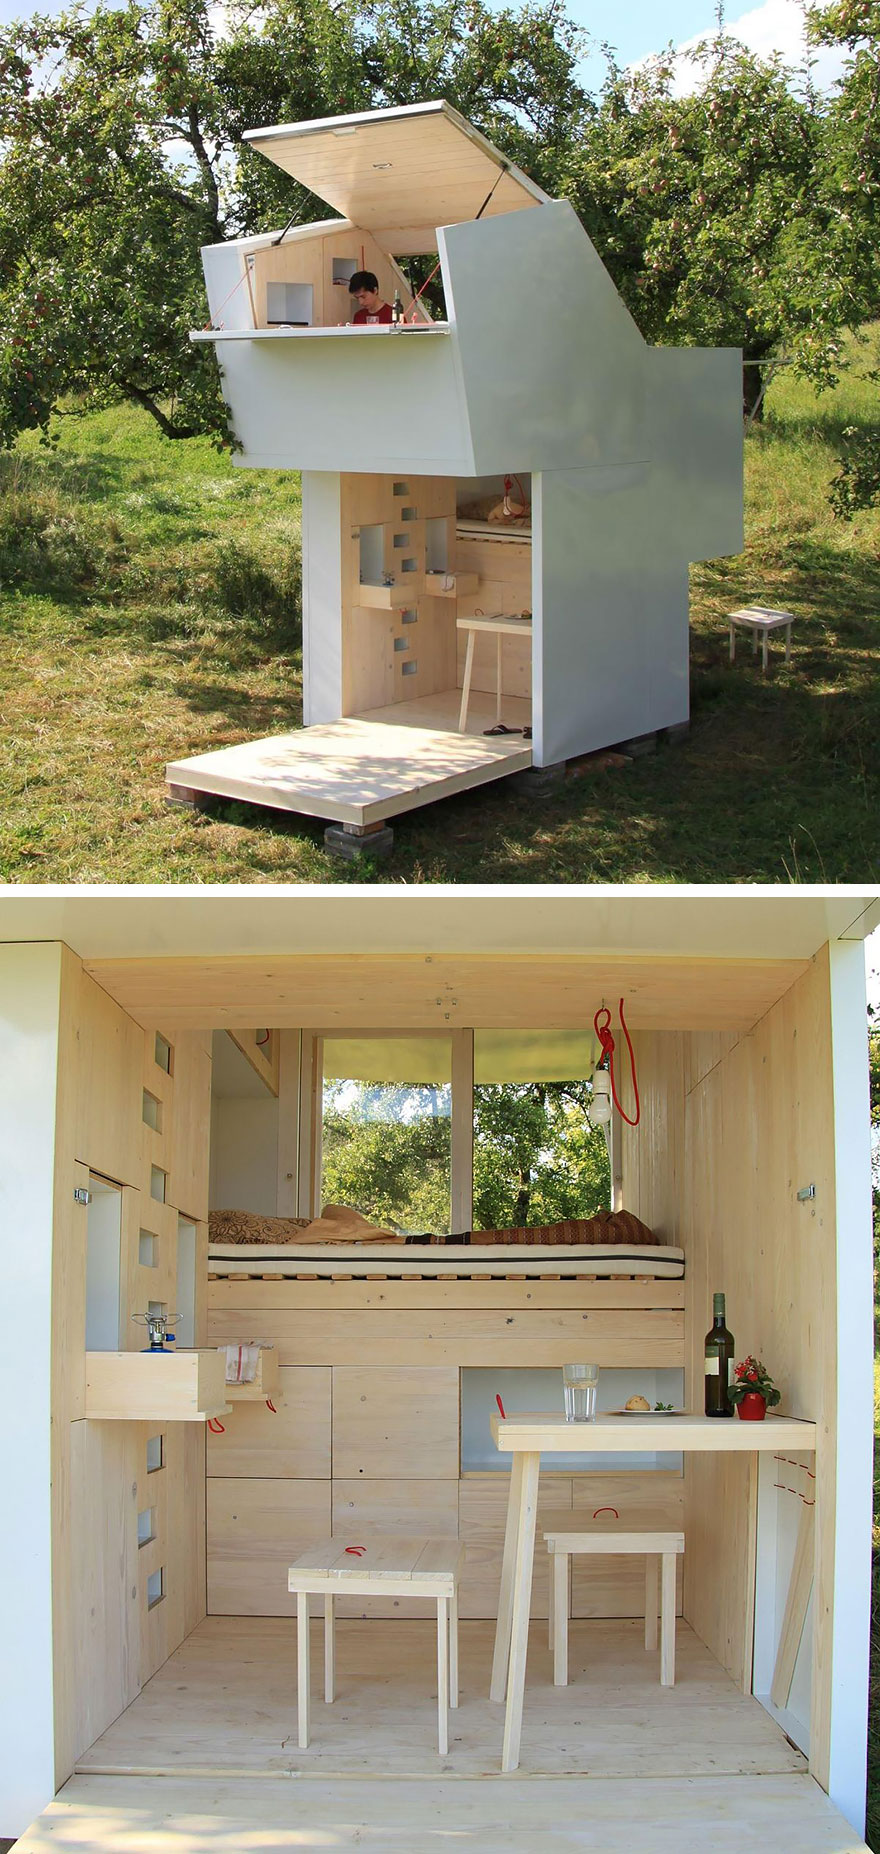 20 tiny homes that make the most of a little space for Small home images